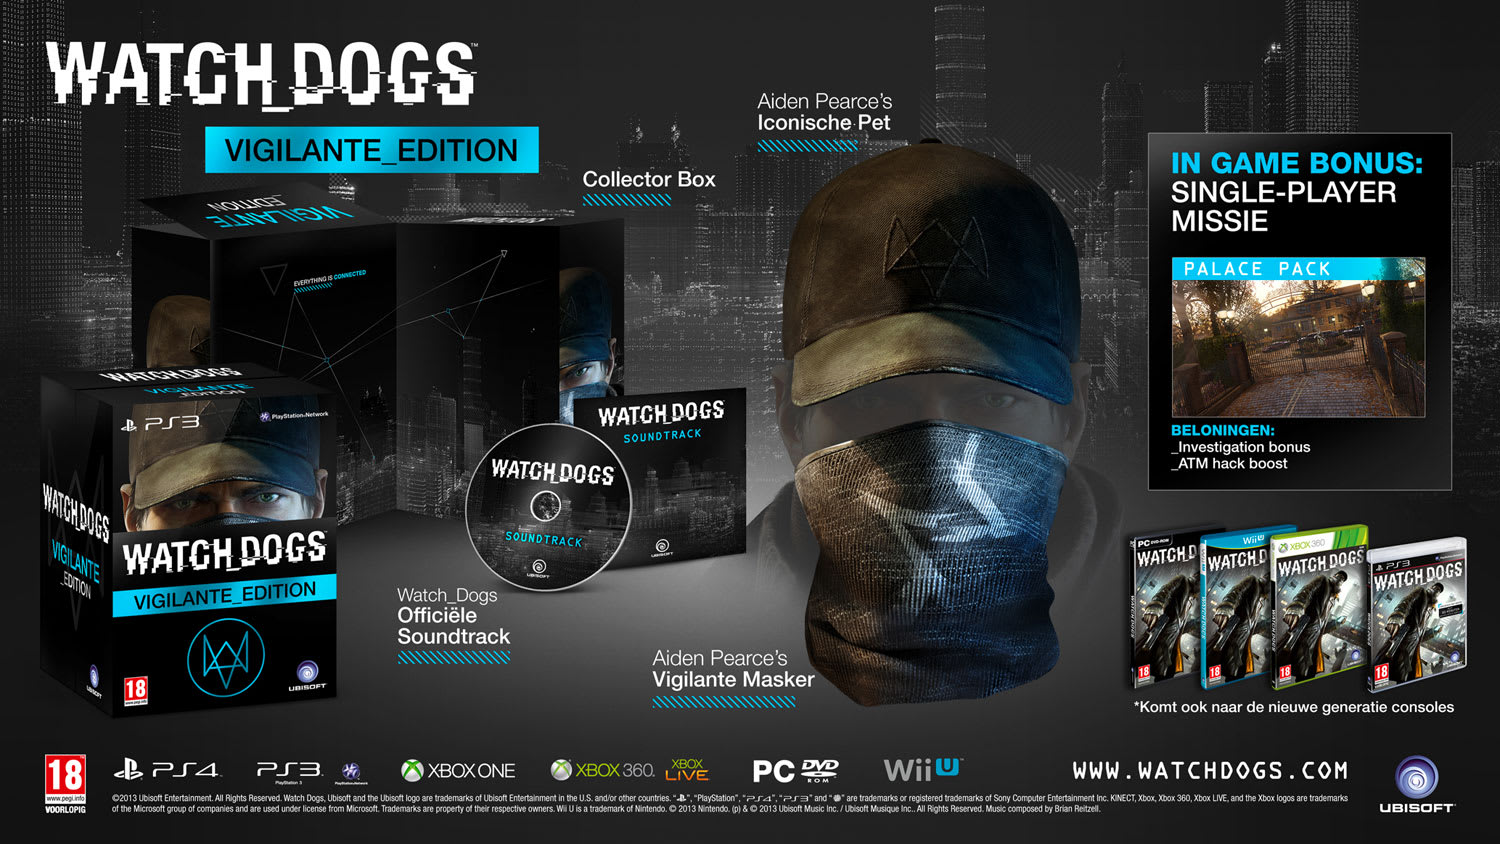 http://img.game.co.uk/images/content/SpecialEditions/Watch_DogsVigilanteEditionLarge.jpg